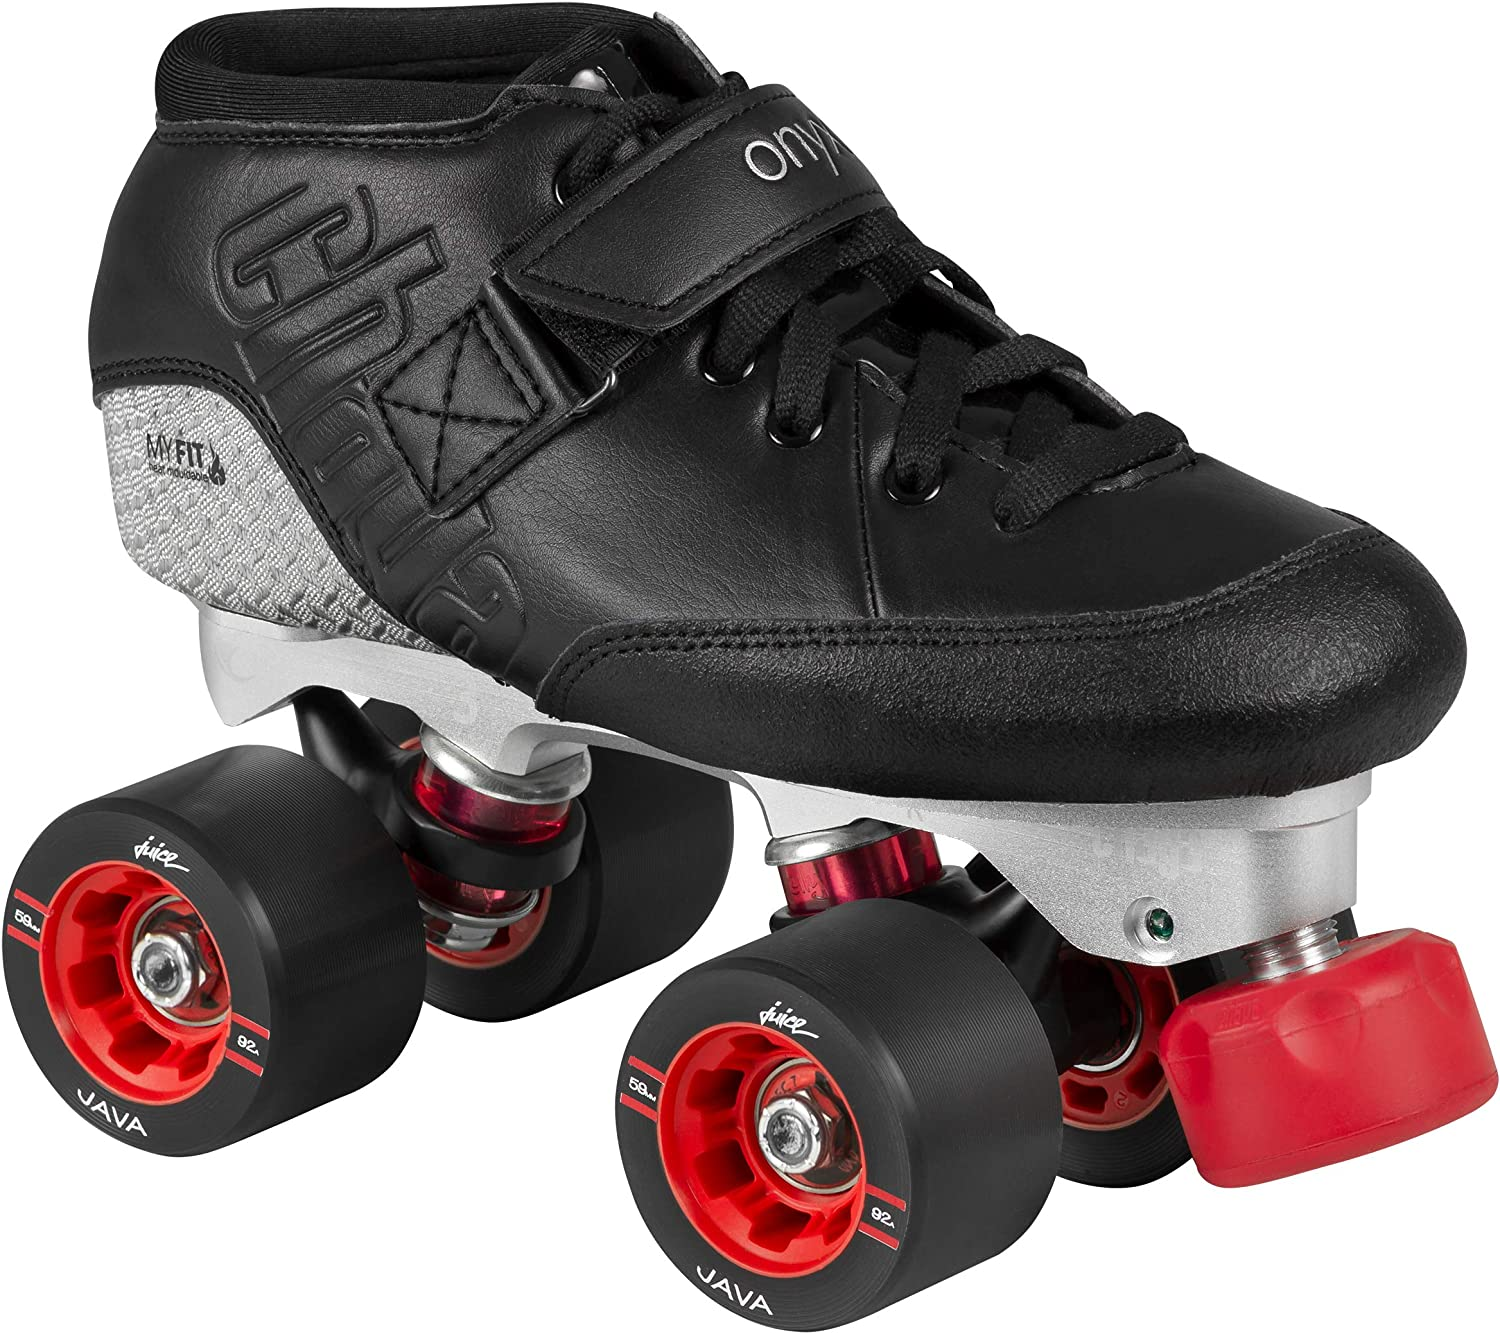 Chaya Onyx Quad Attention brand Roller Derby High material Skate